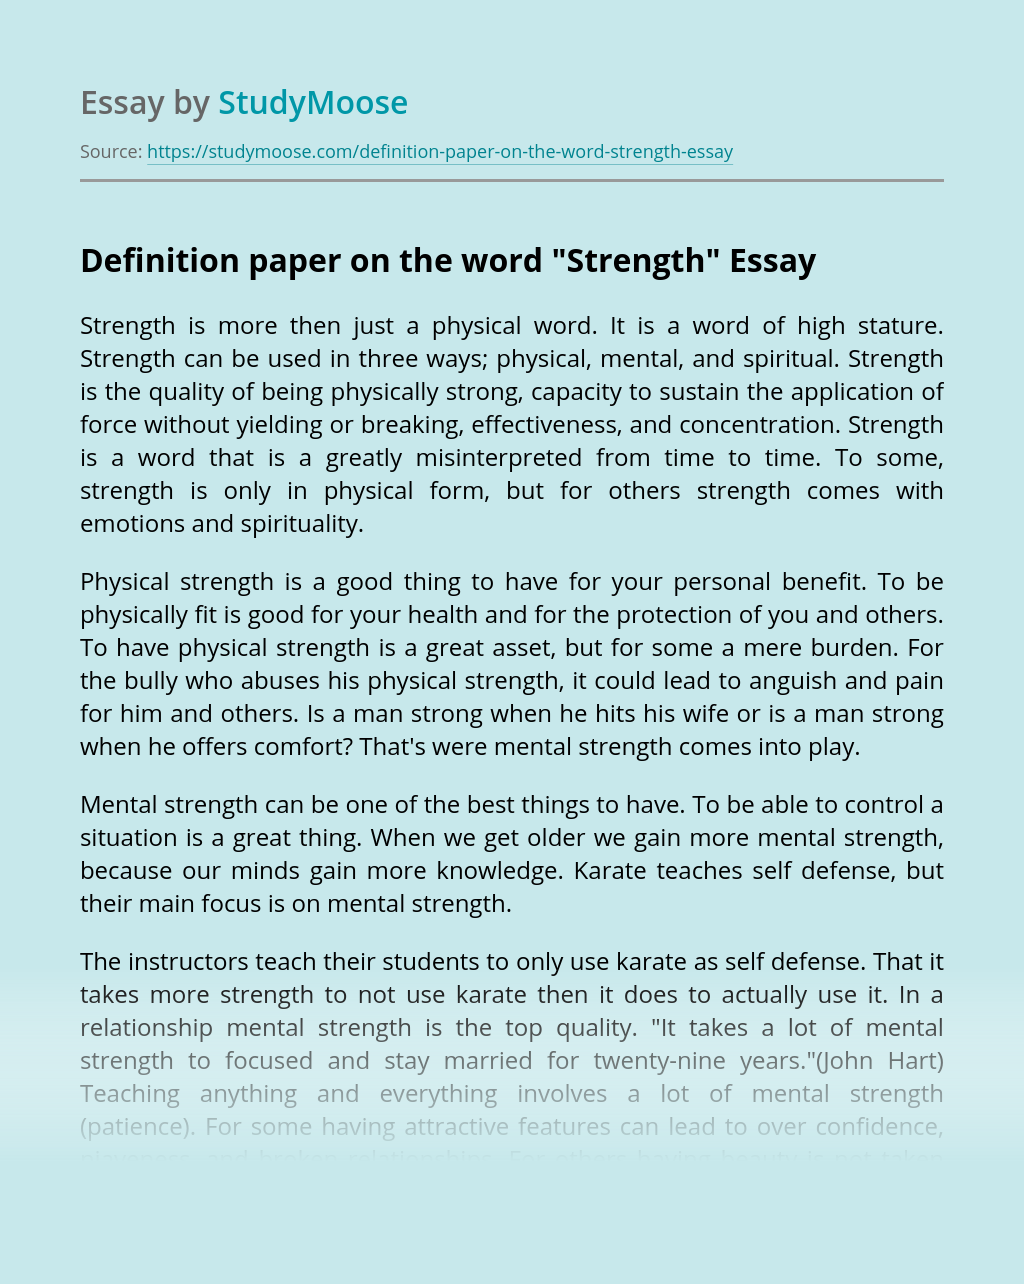 """Definition paper on the word """"Strength"""""""